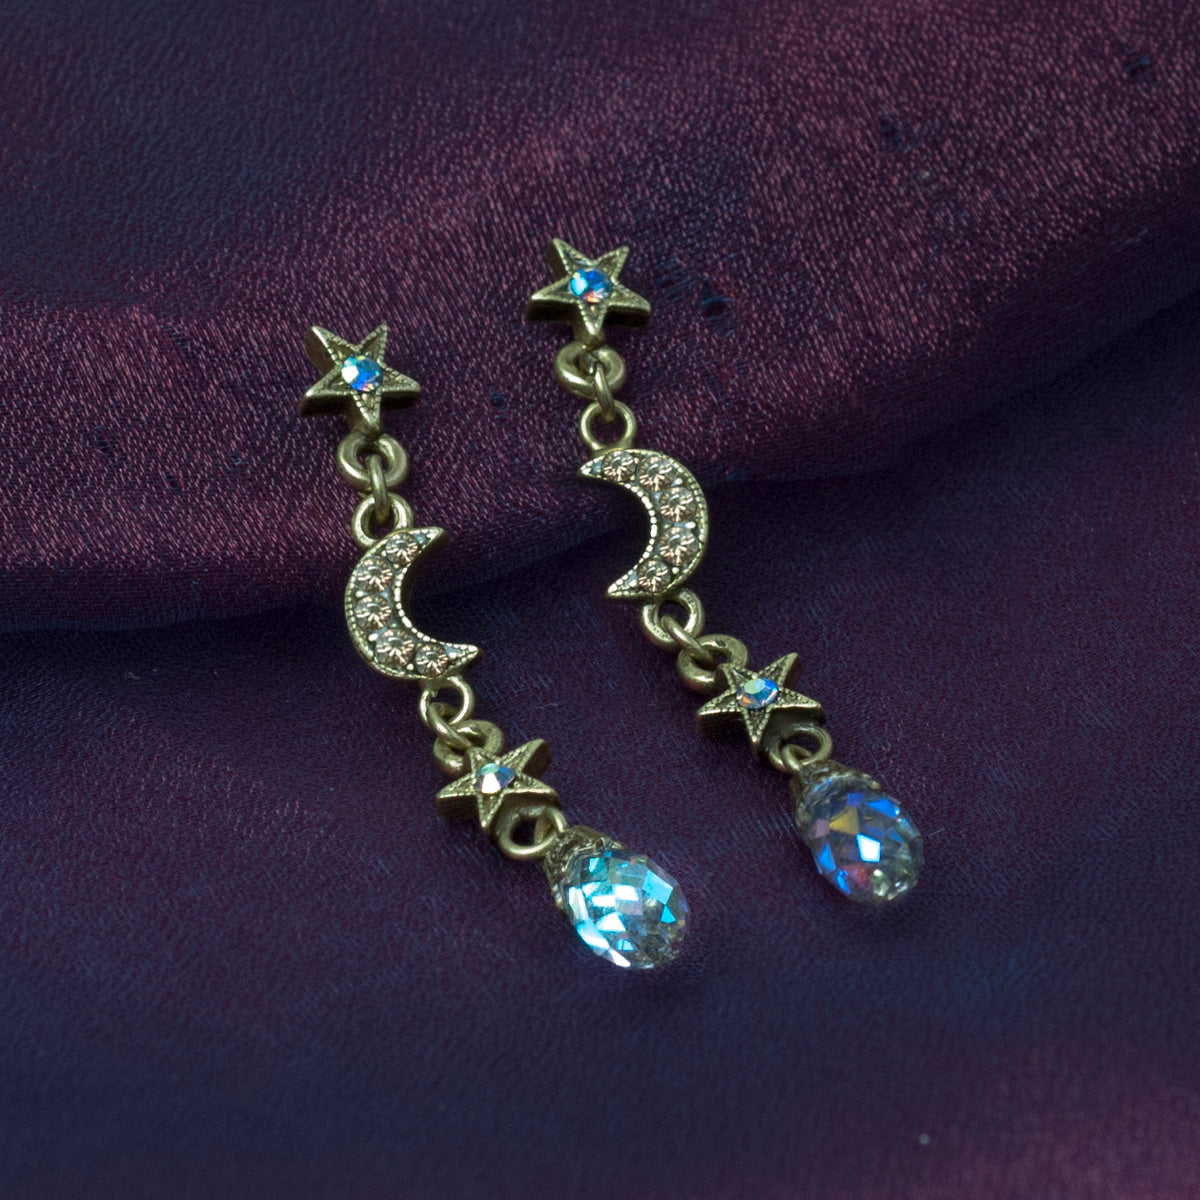 Dangling Moon & Star Earrings E1494 - Sweet Romance Wholesale